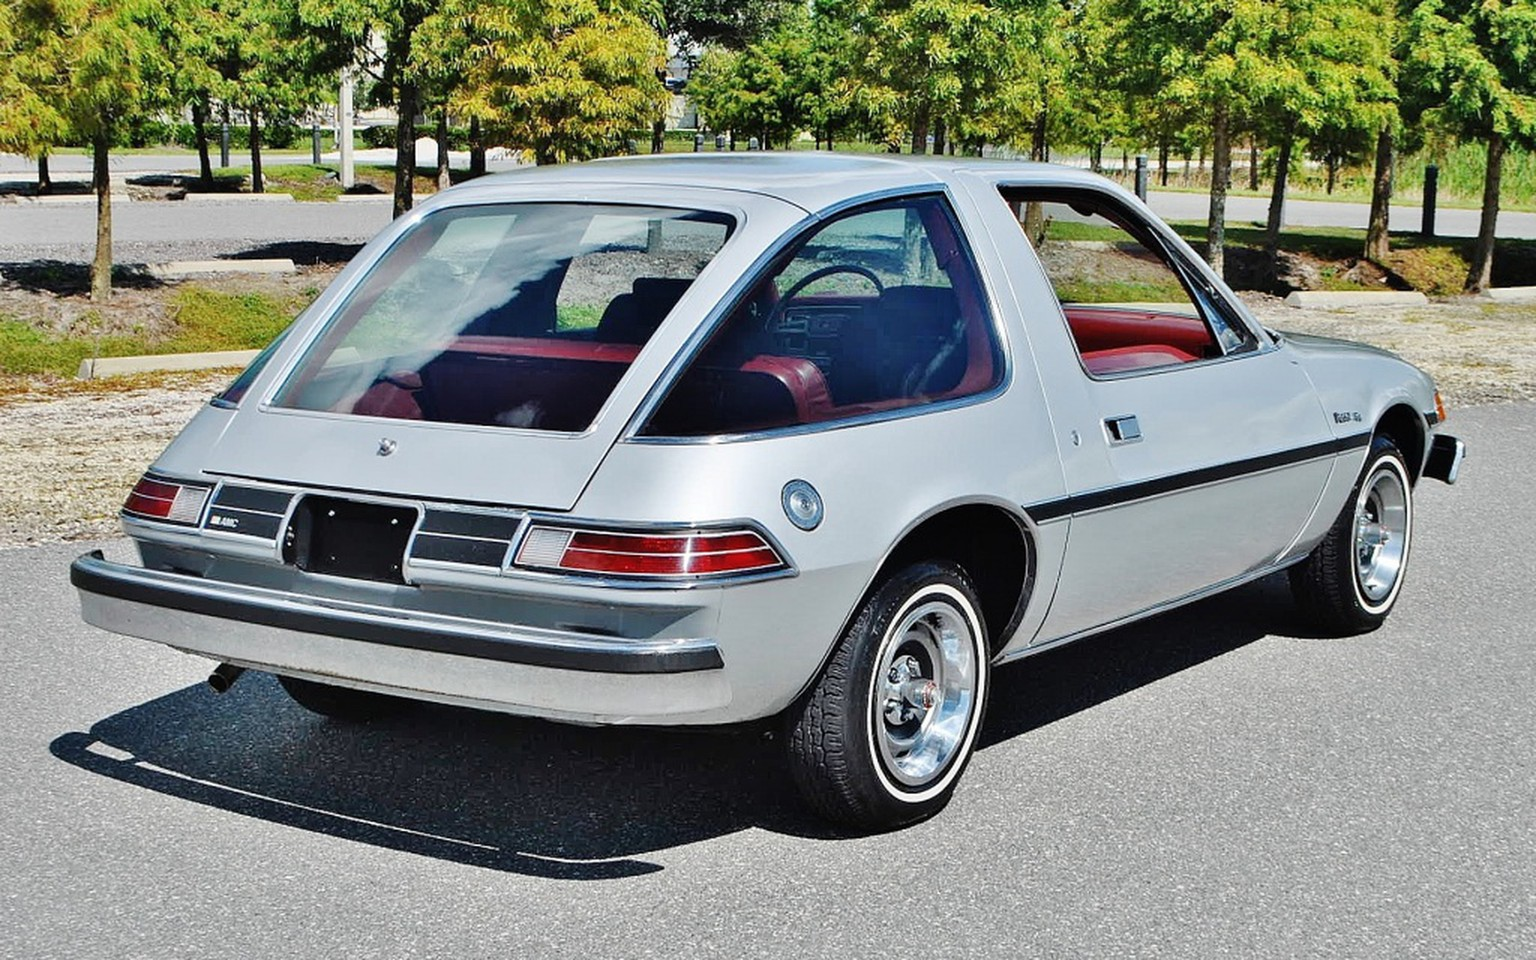 amc pacer USA auto kompaktauto 1970er https://barnfinds.com/37k-mile-1978-amc-pacer/